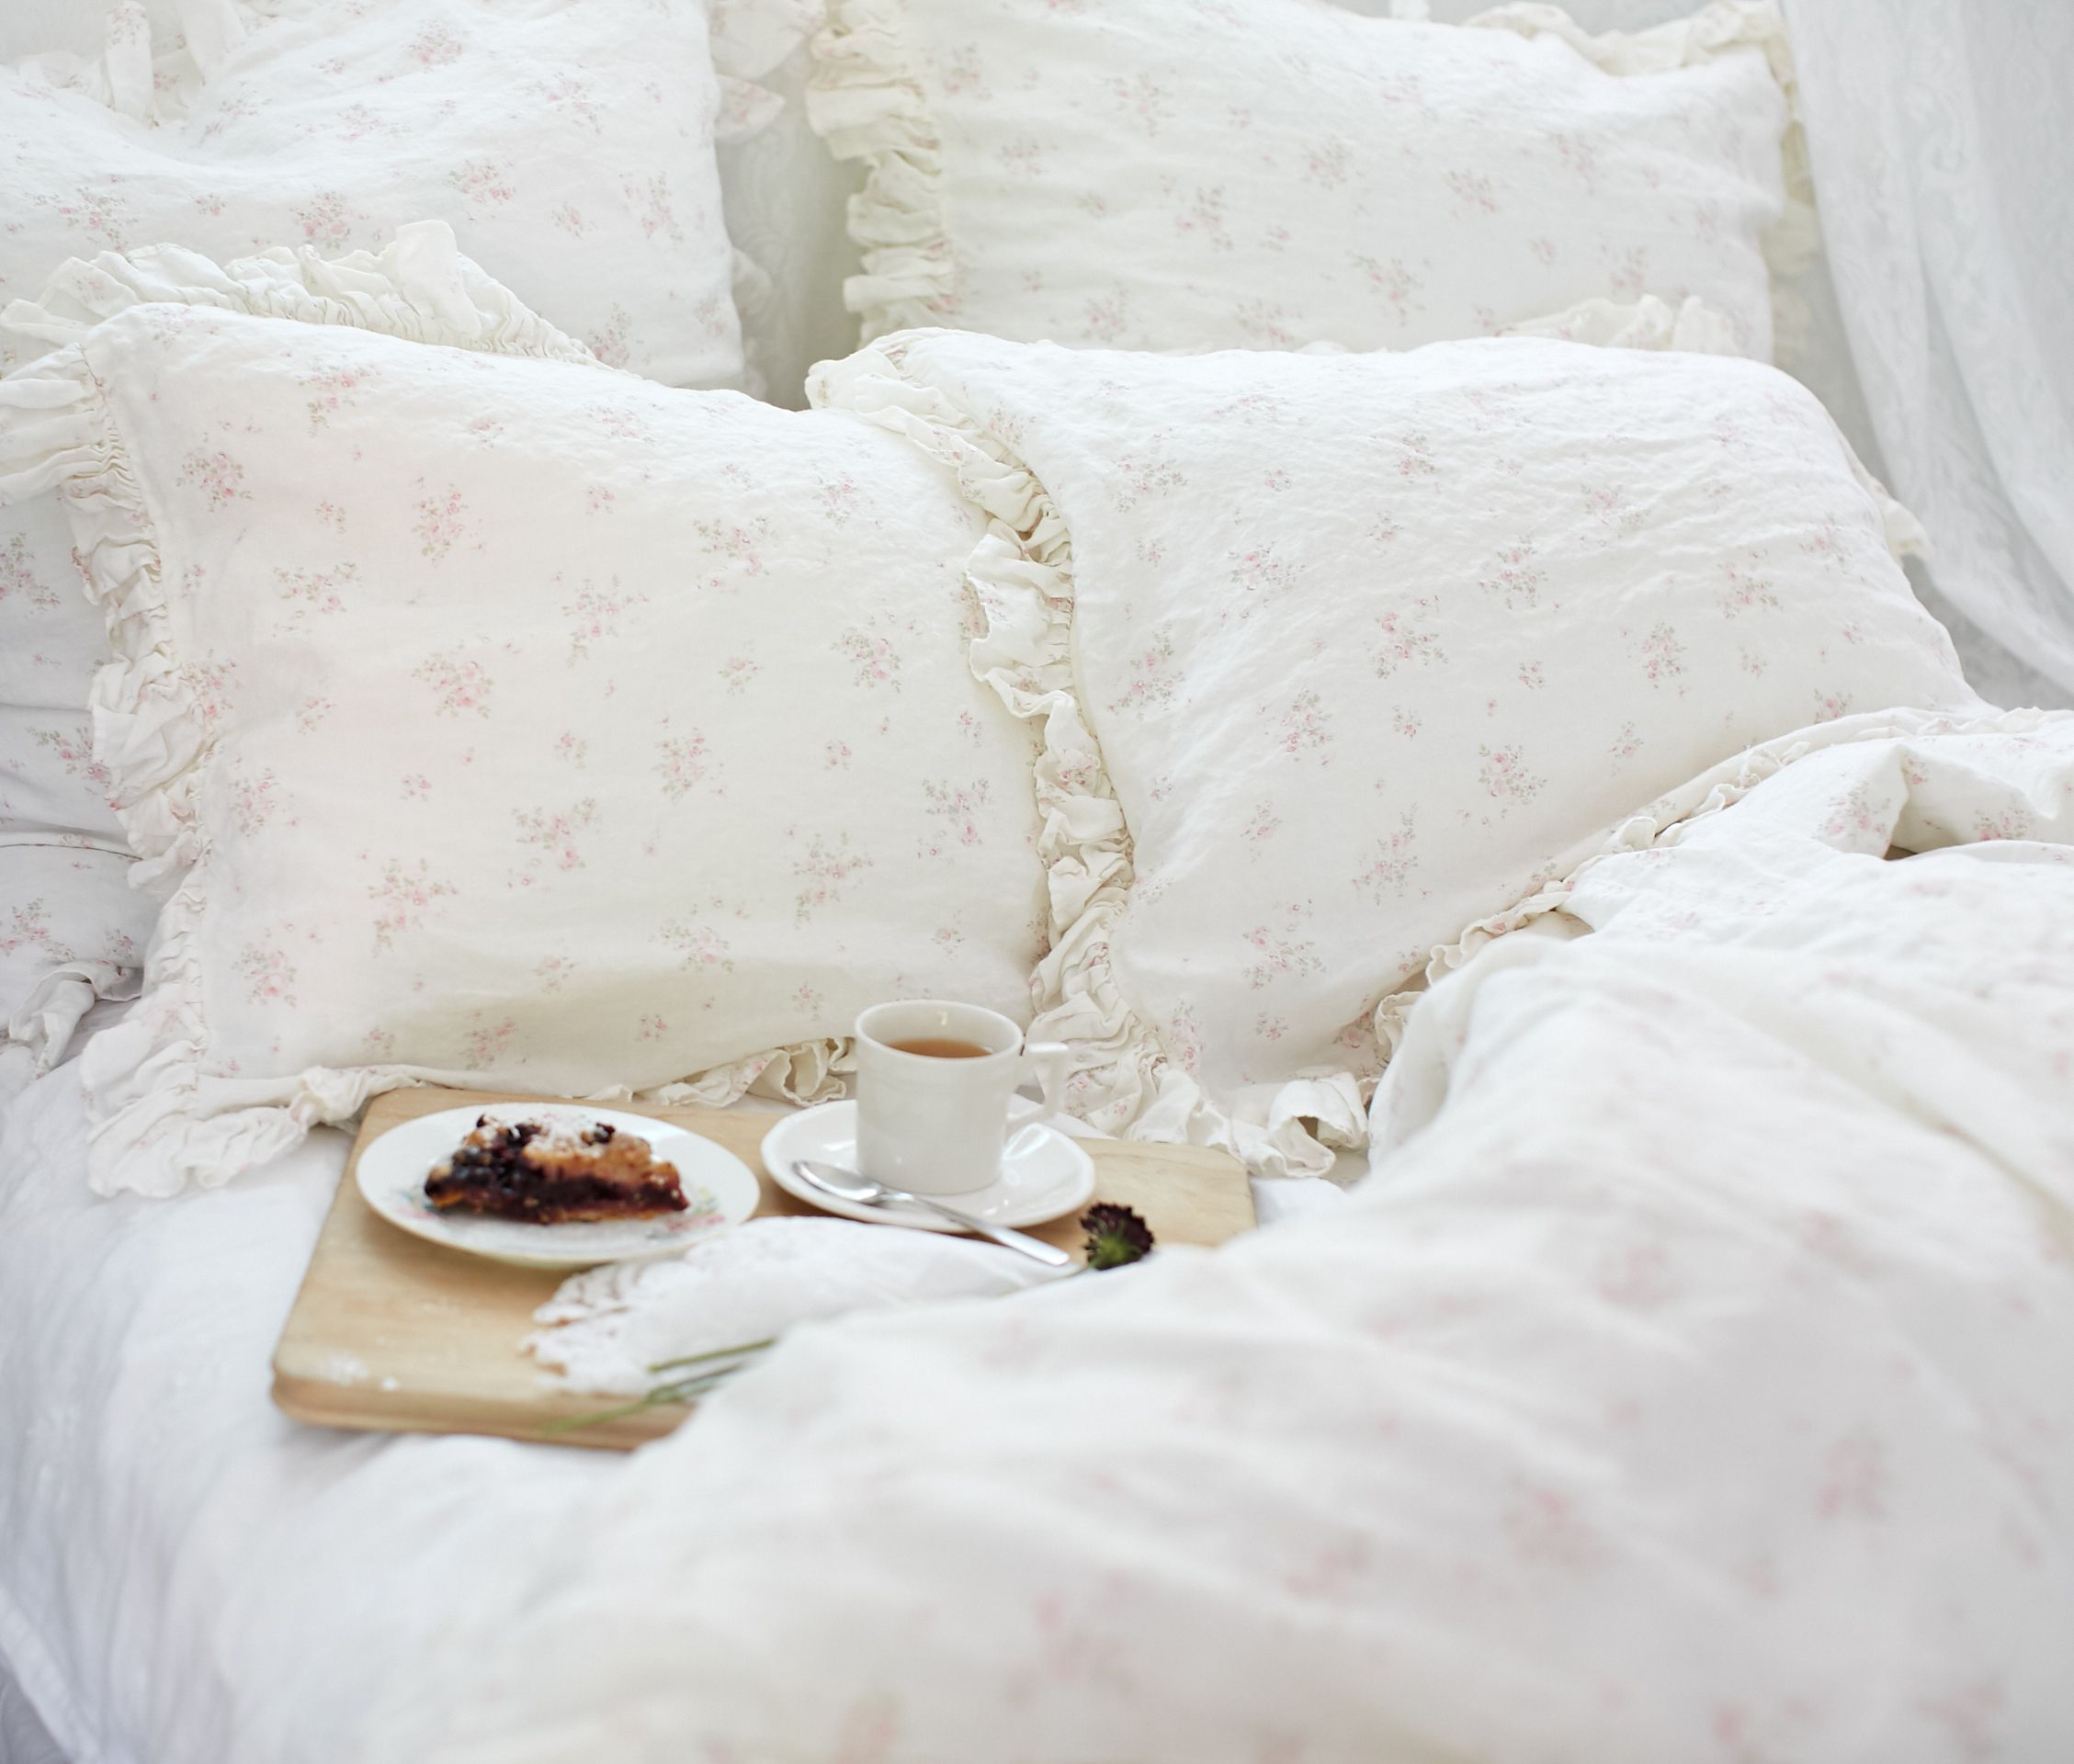 Rosabelle Bedding Collection offers a vintage inspired look through a combination of soft pink flowers over an off-white linen background